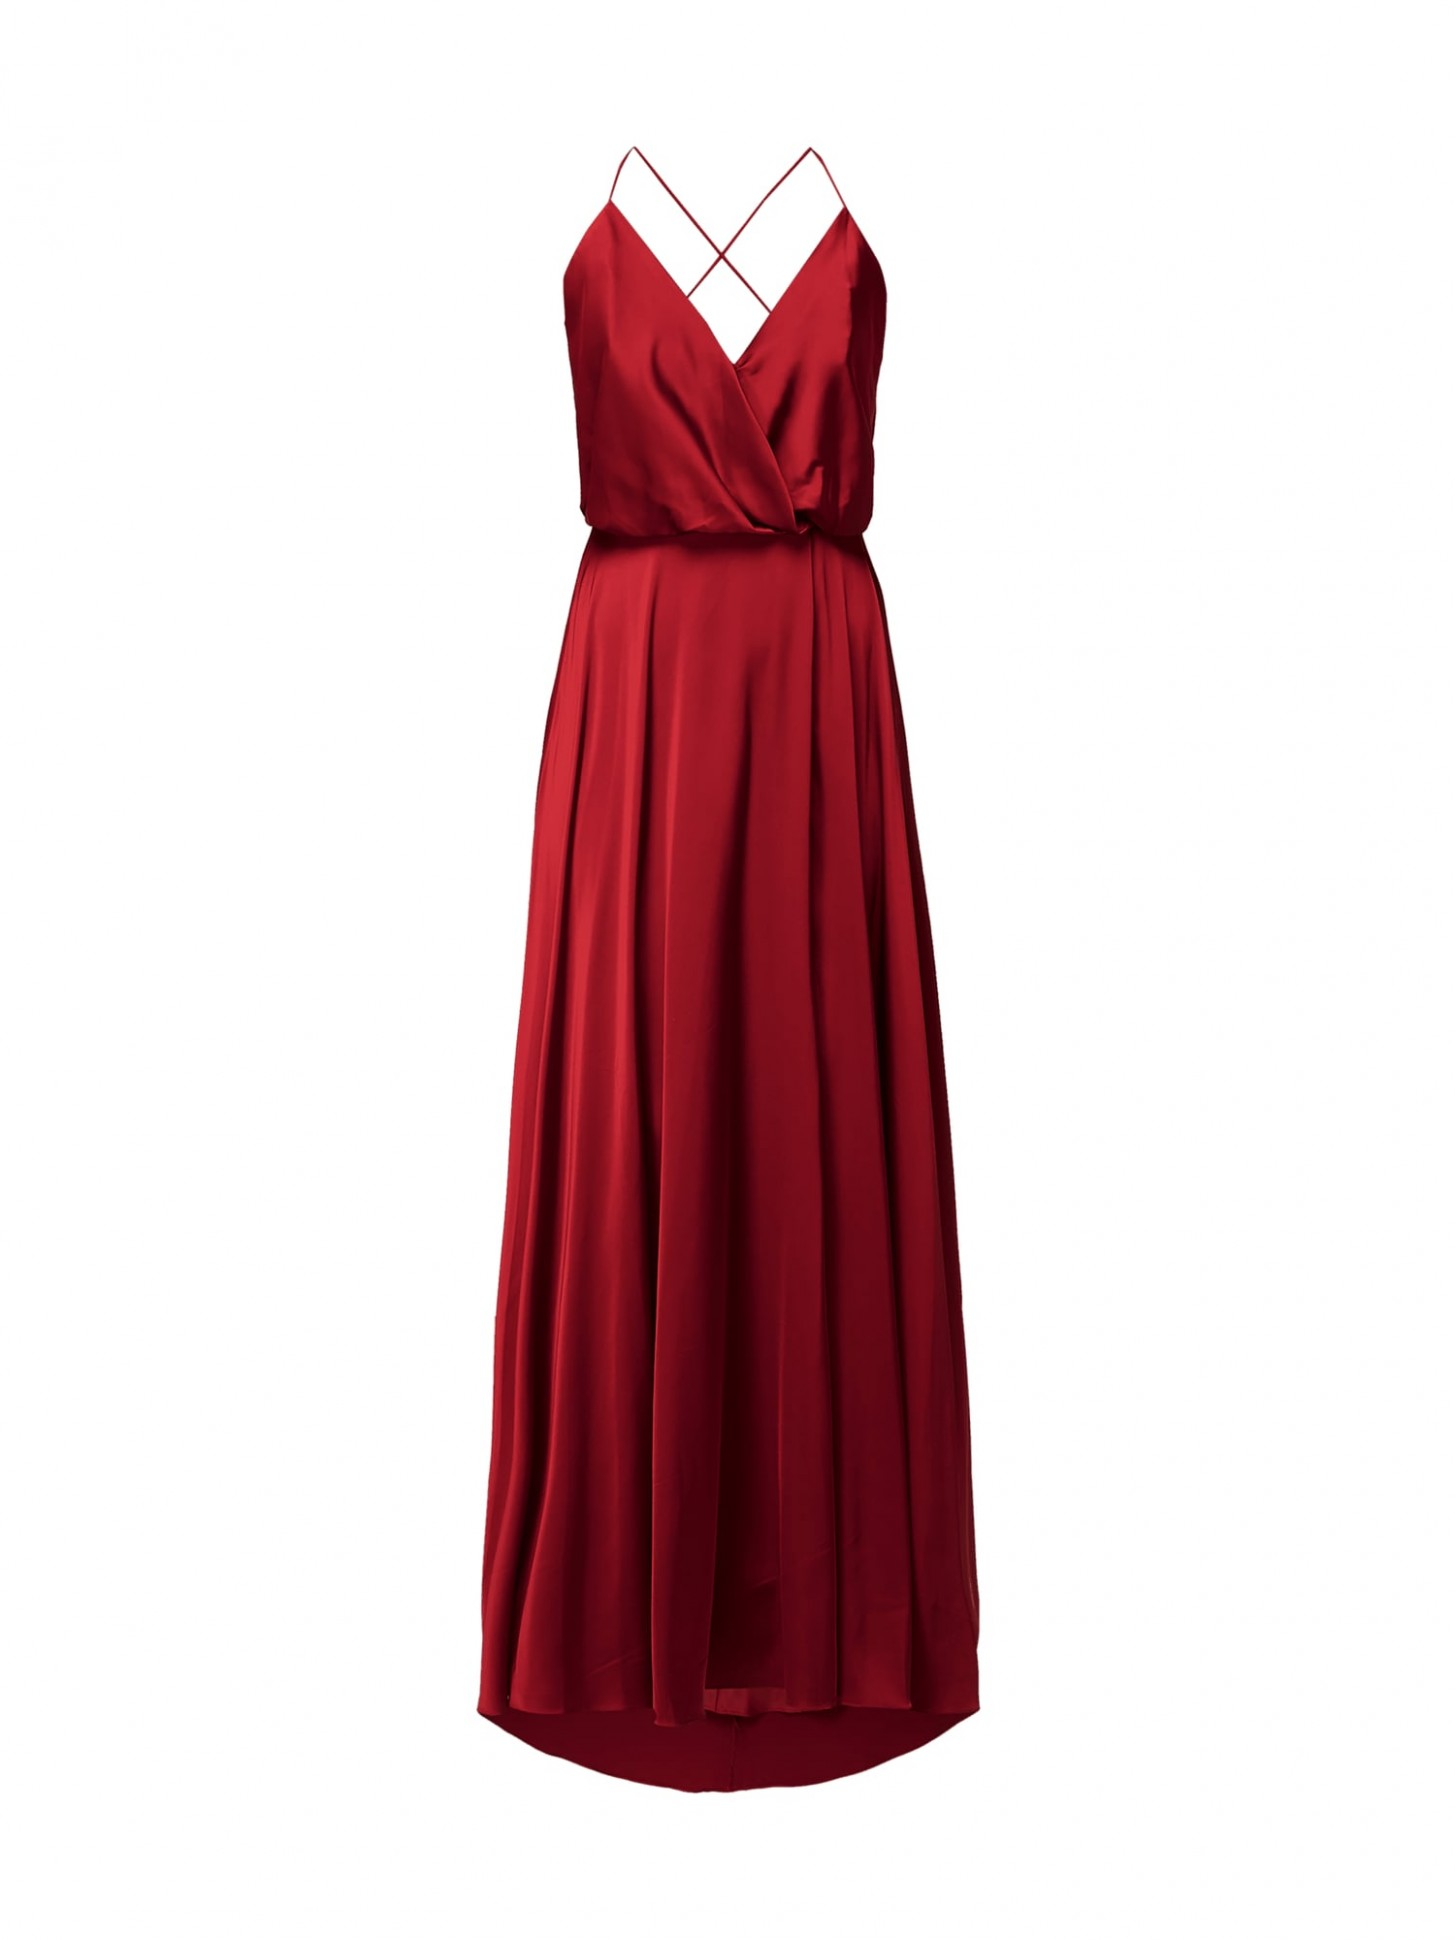 unique abendkleid aus satin in rot online kaufen (12) ▷ p&c online shop unique kleider